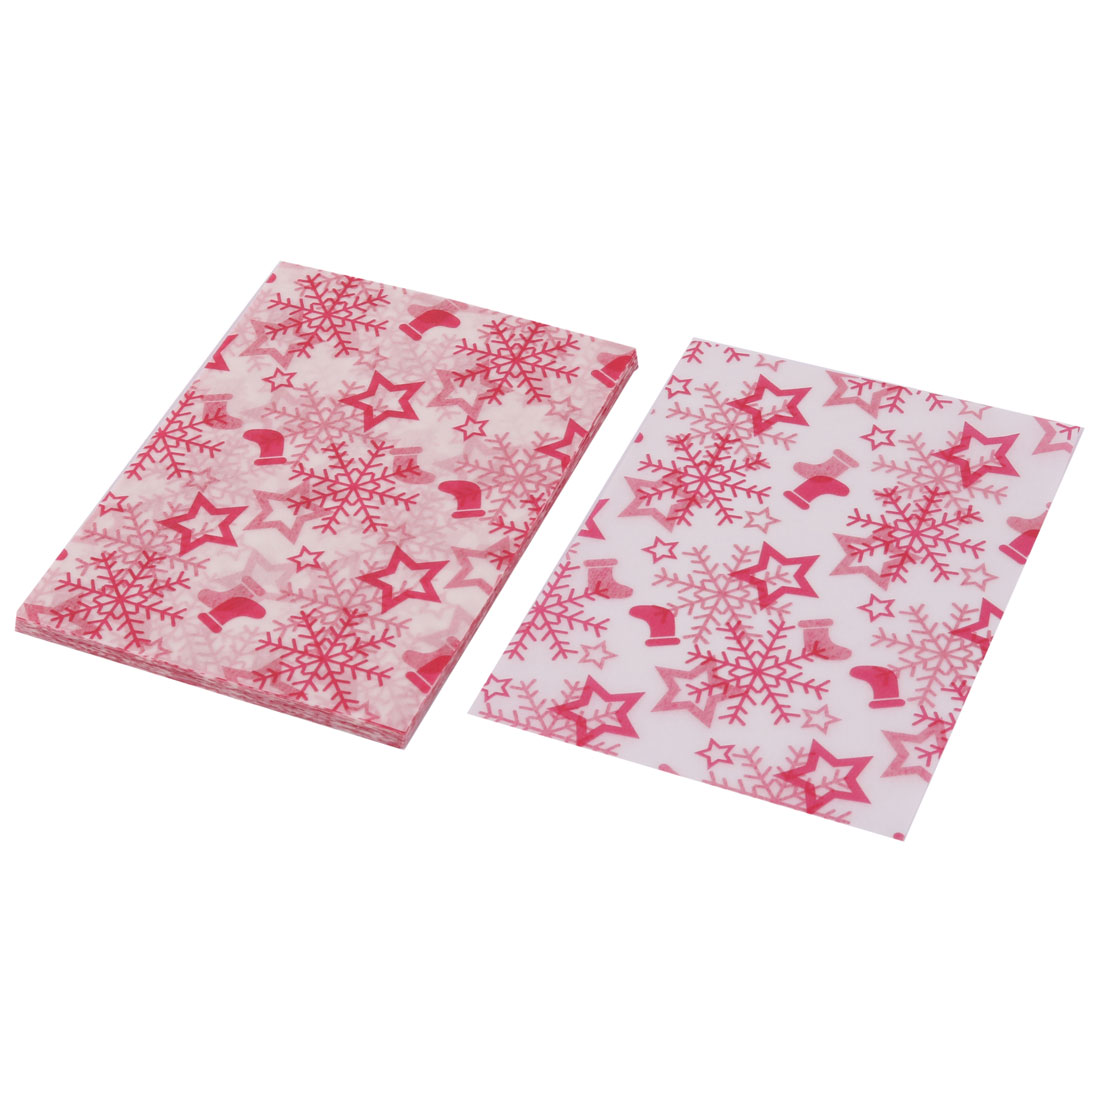 Birthday Snowflake Pattern Candy Sugar Chocolate Packaging Wrapping Paper 100pcs